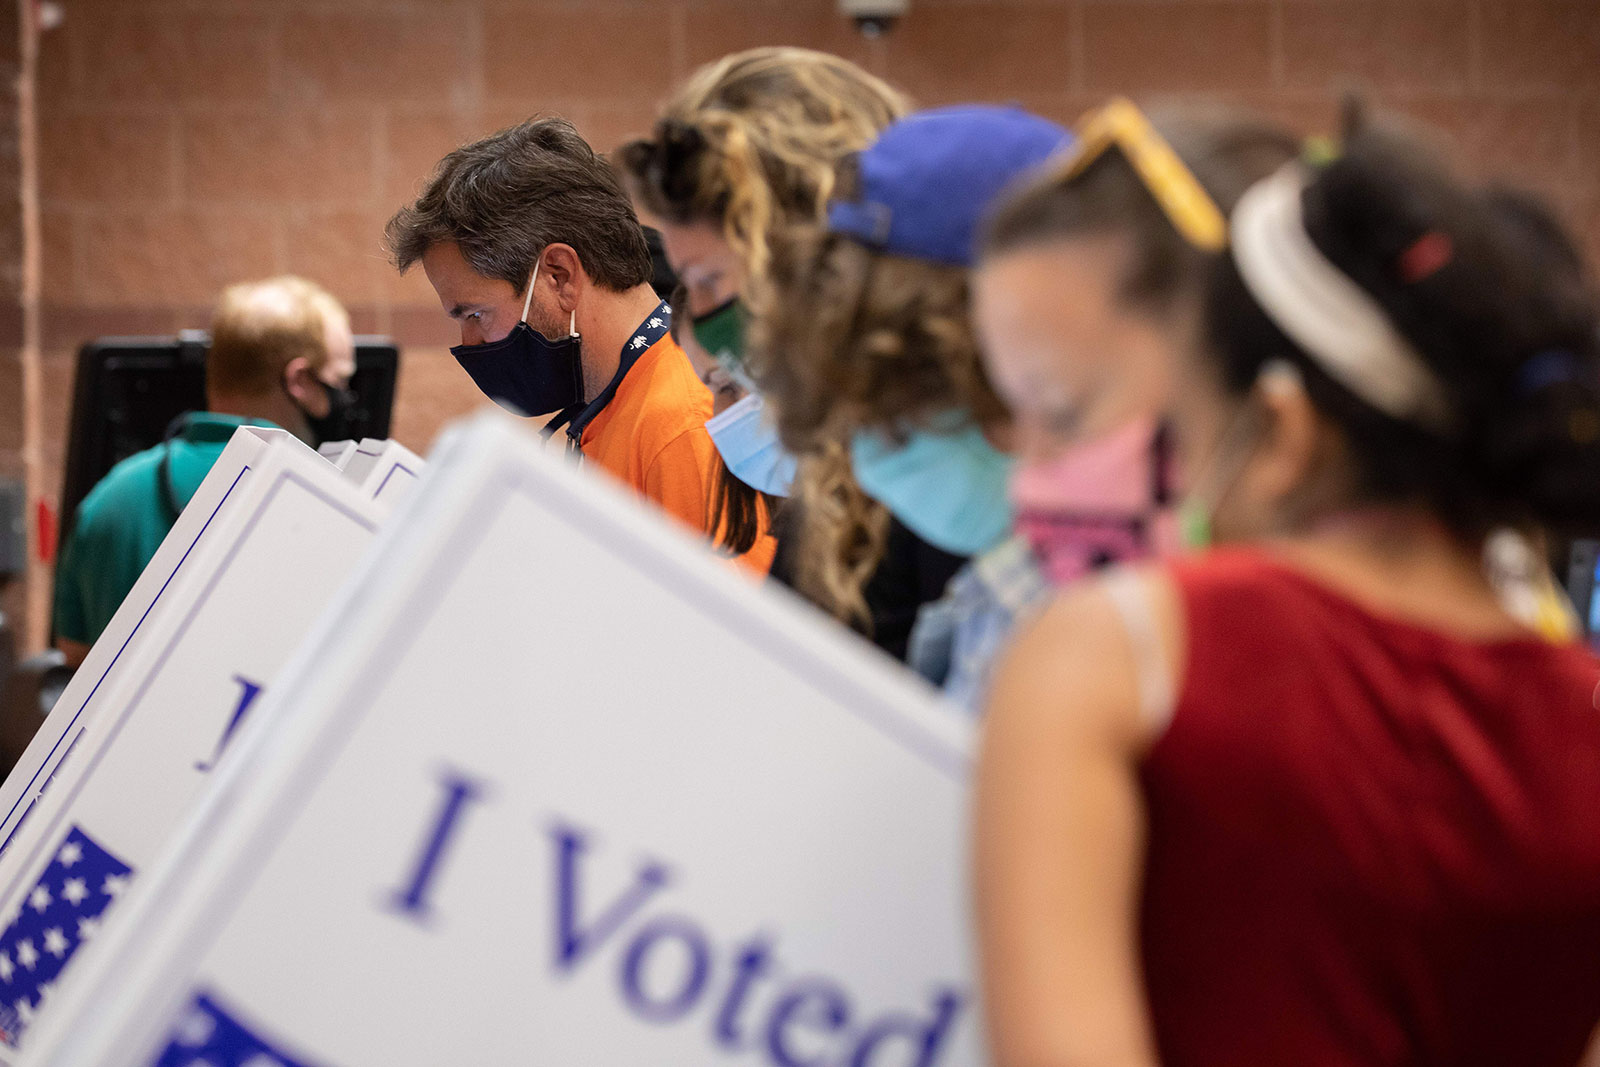 Voters cast their ballots in Charleston, South Carolina, on October 16.